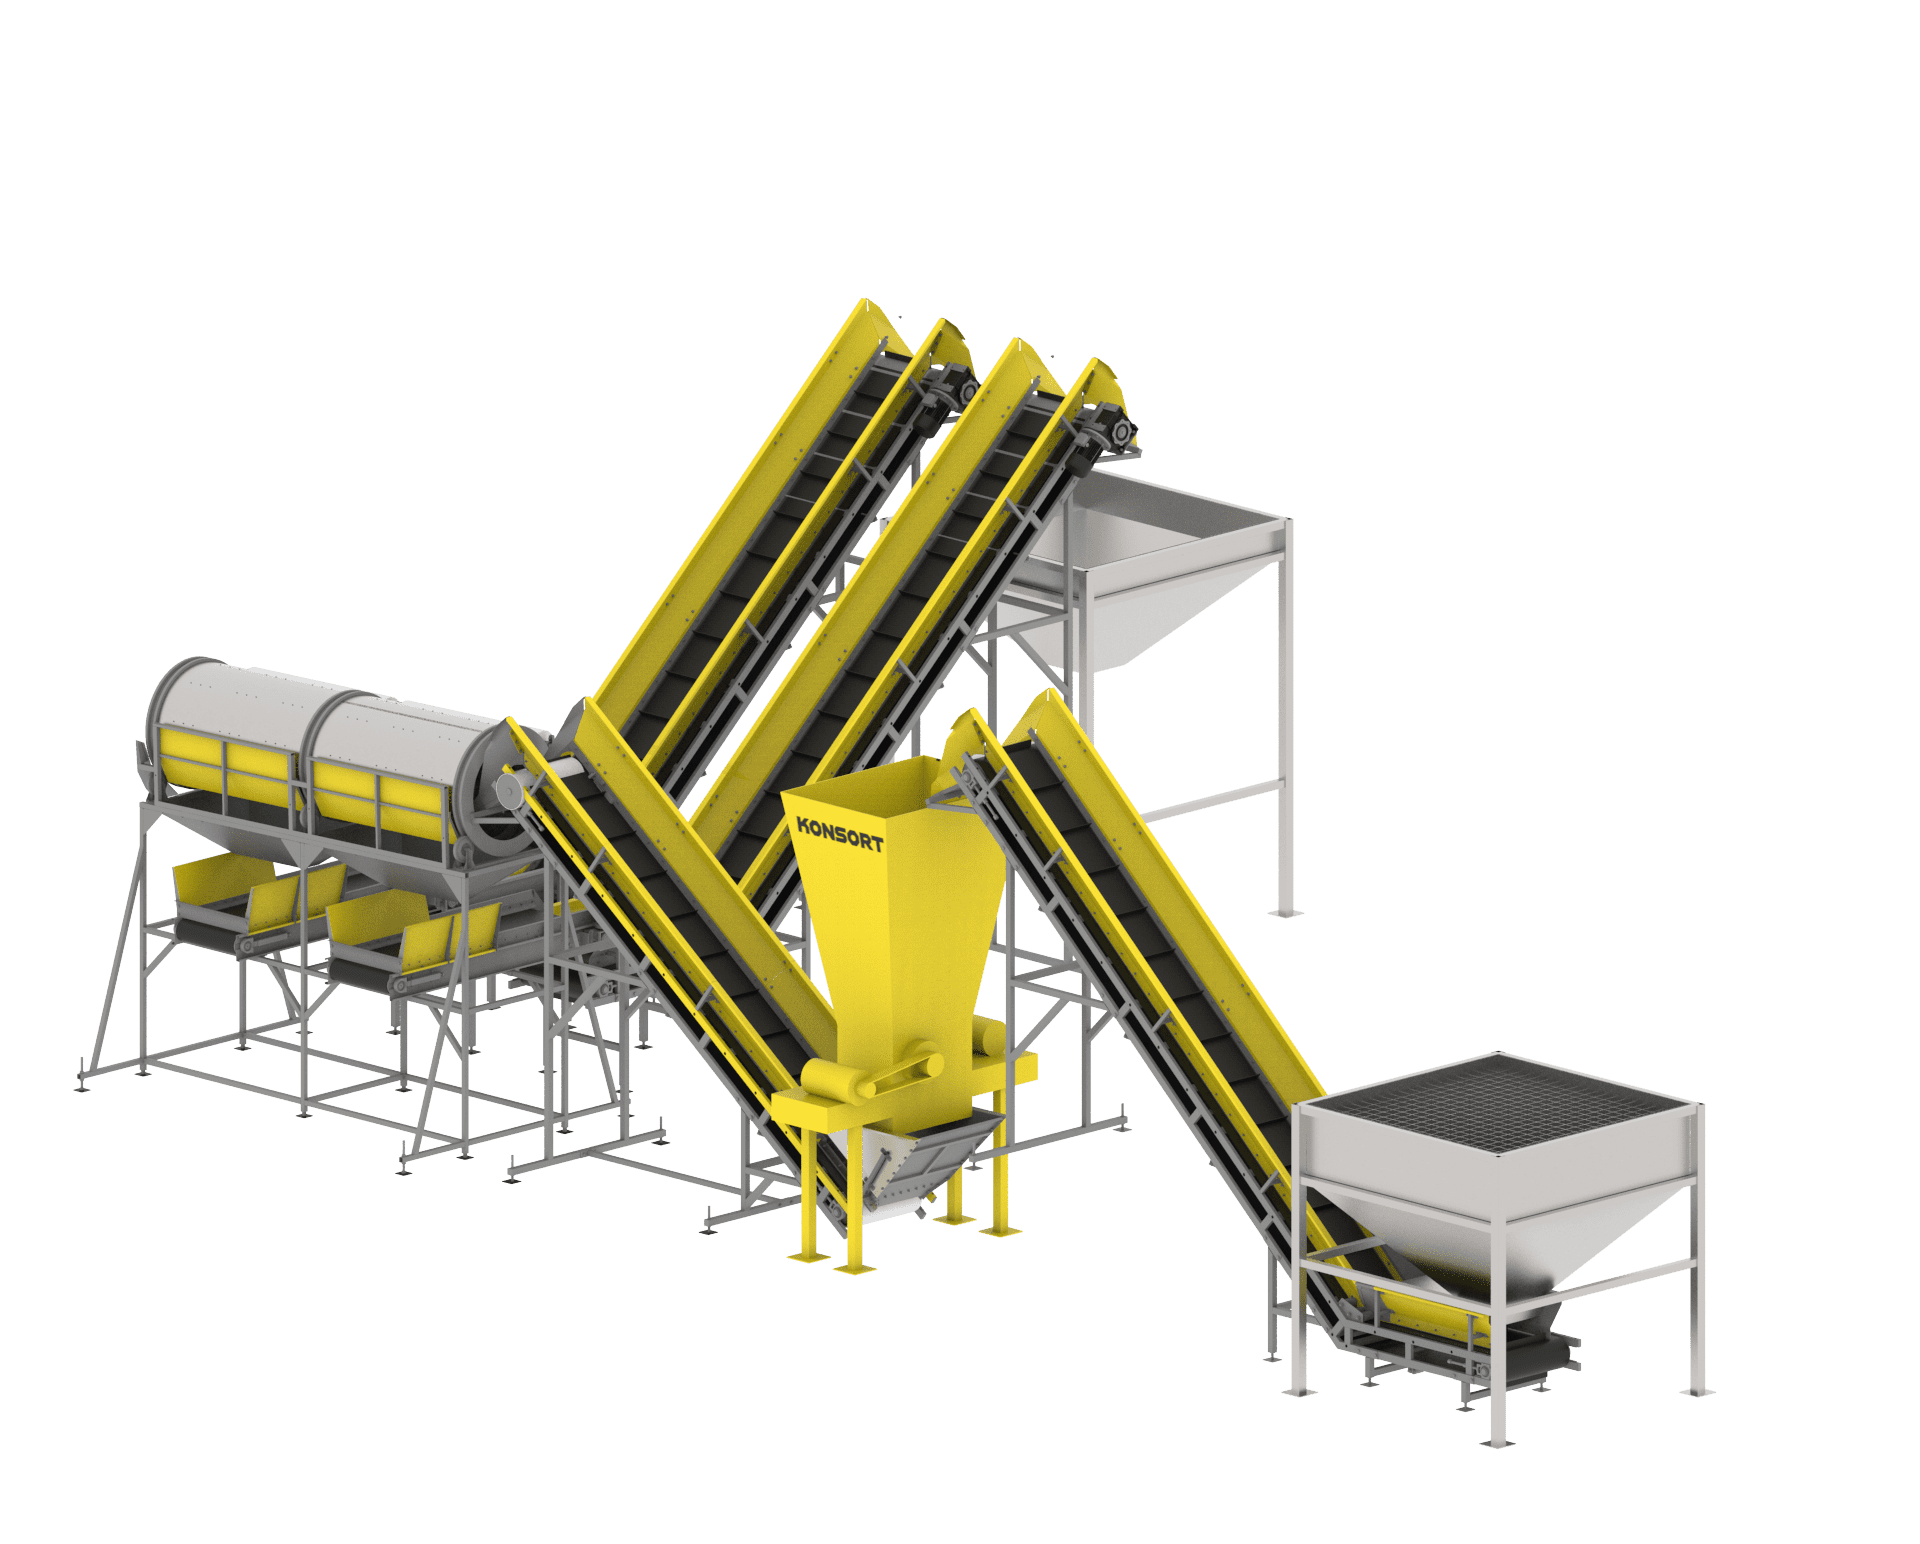 Line for sorting and processing of bulk products